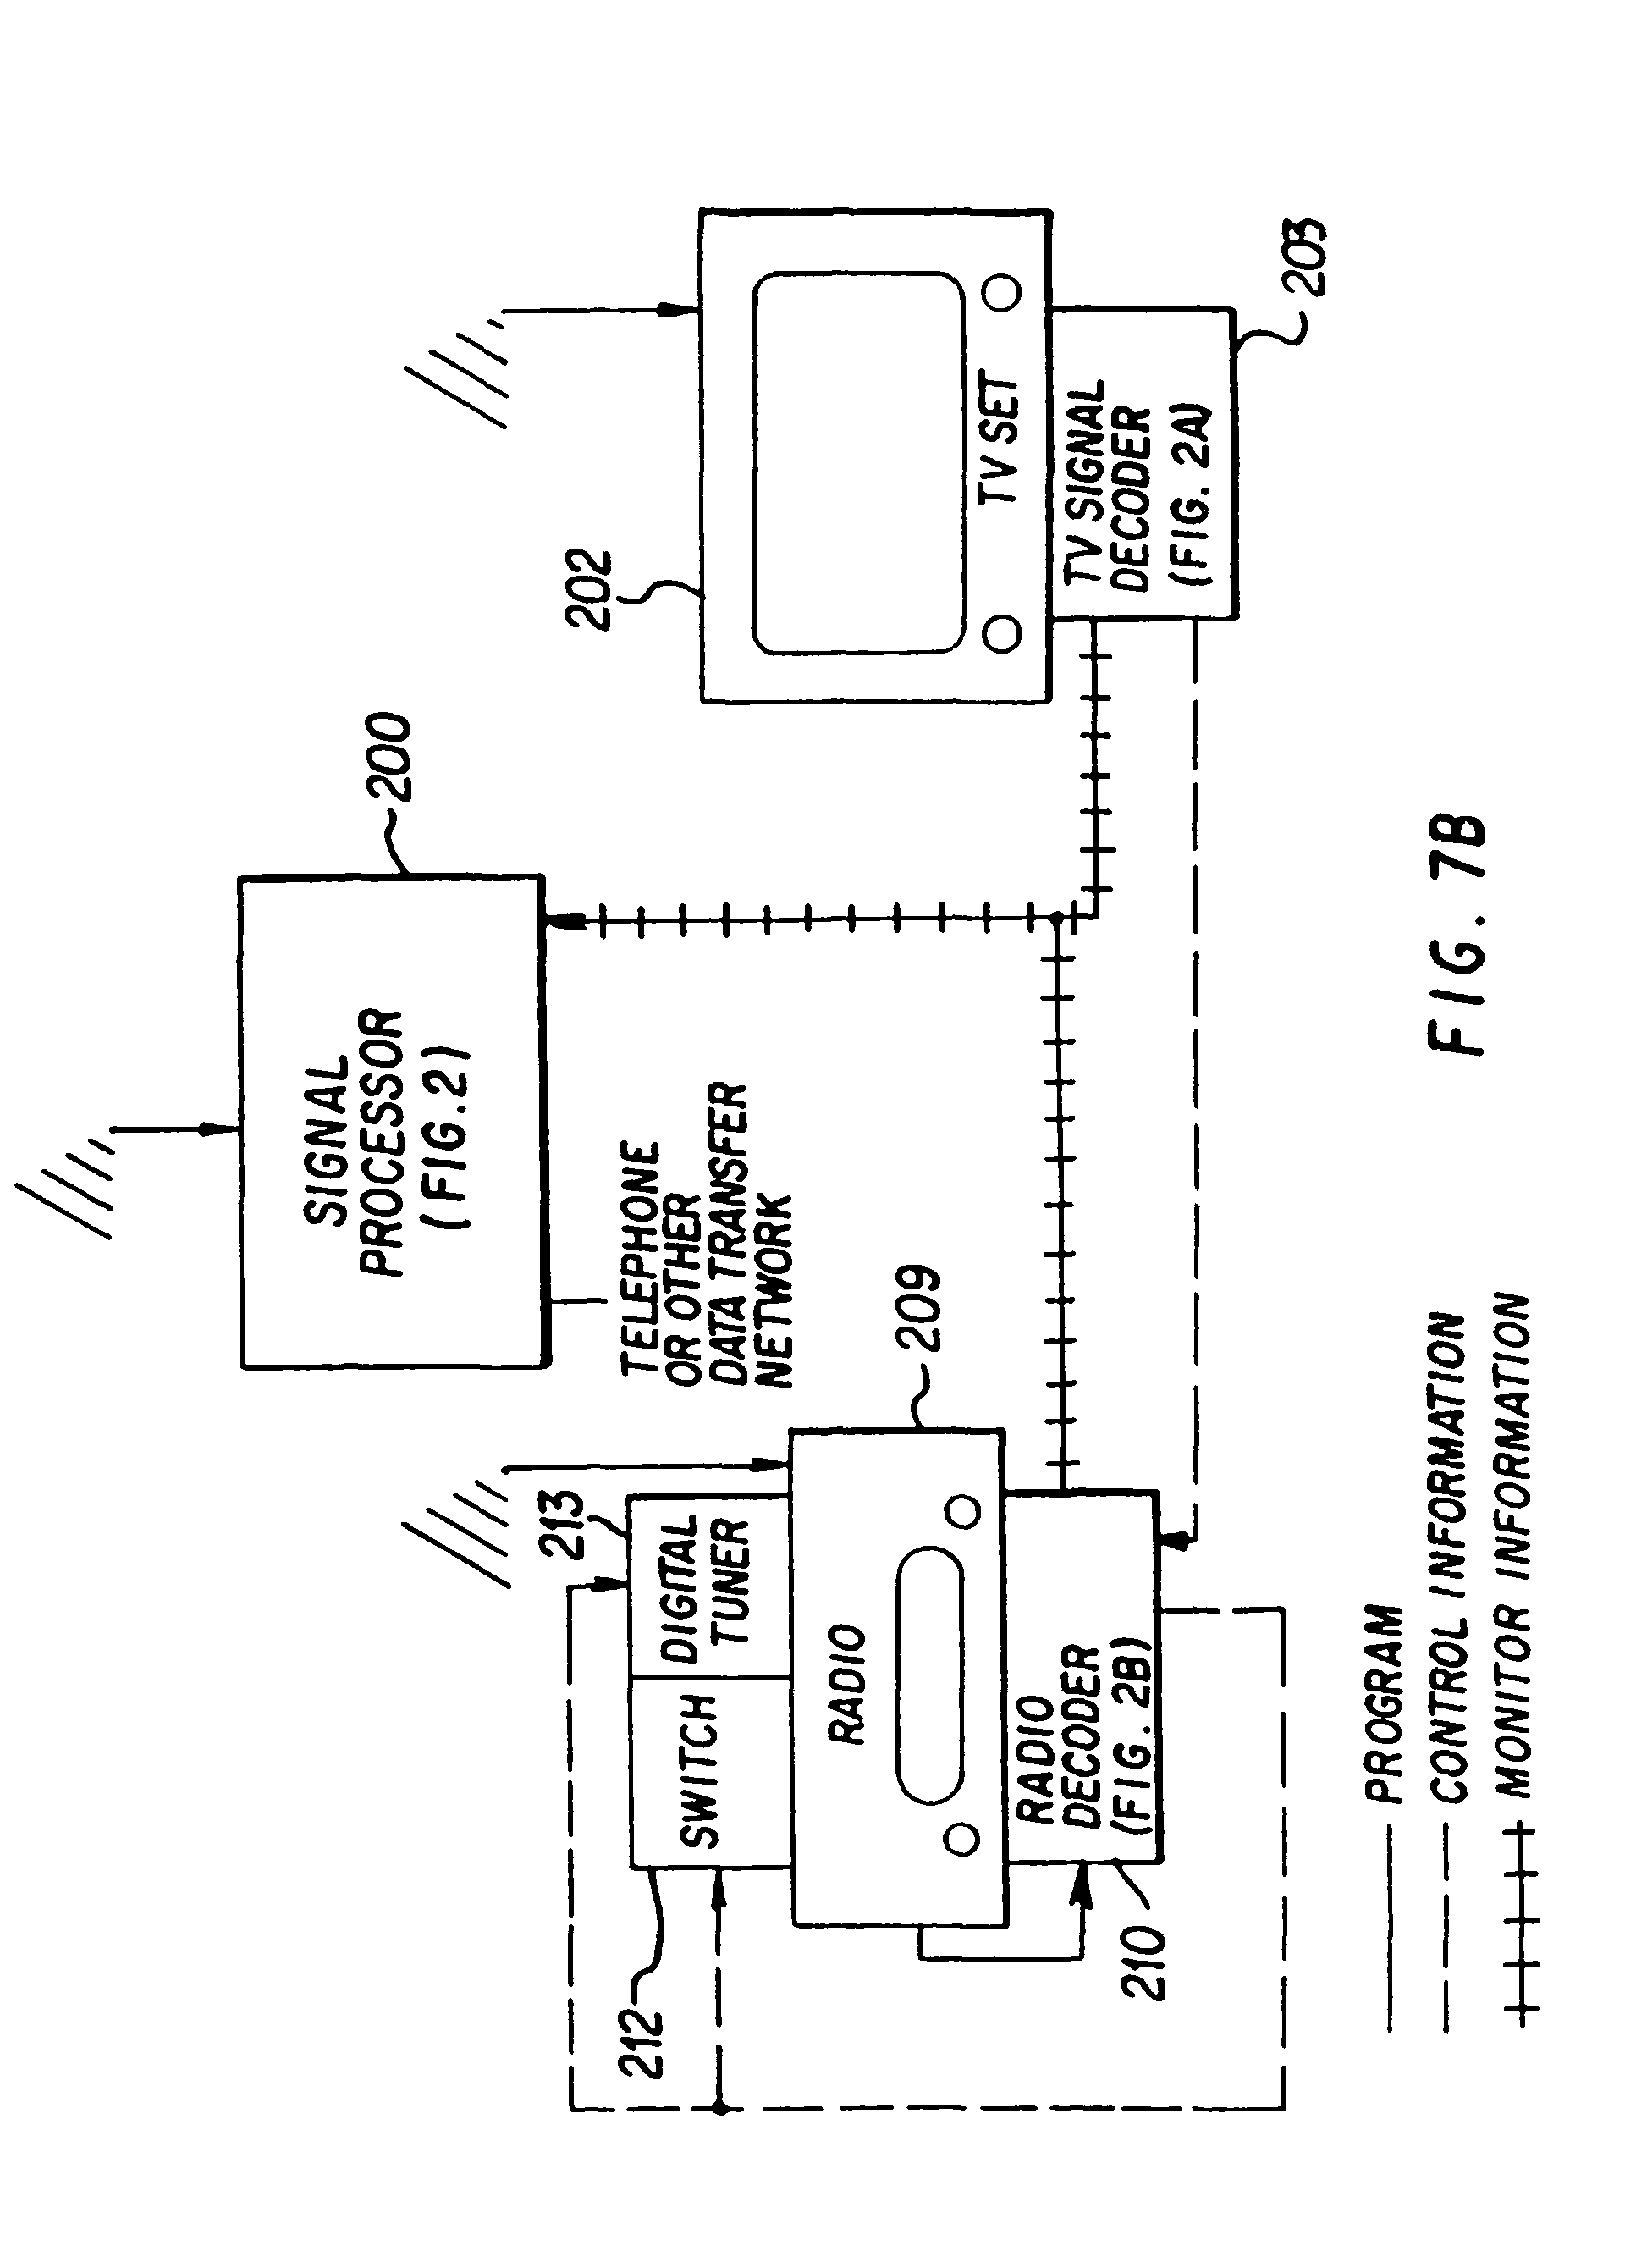 Switch Wiring Diagram Furthermore 1964 Ford Galaxie In Addition 1956